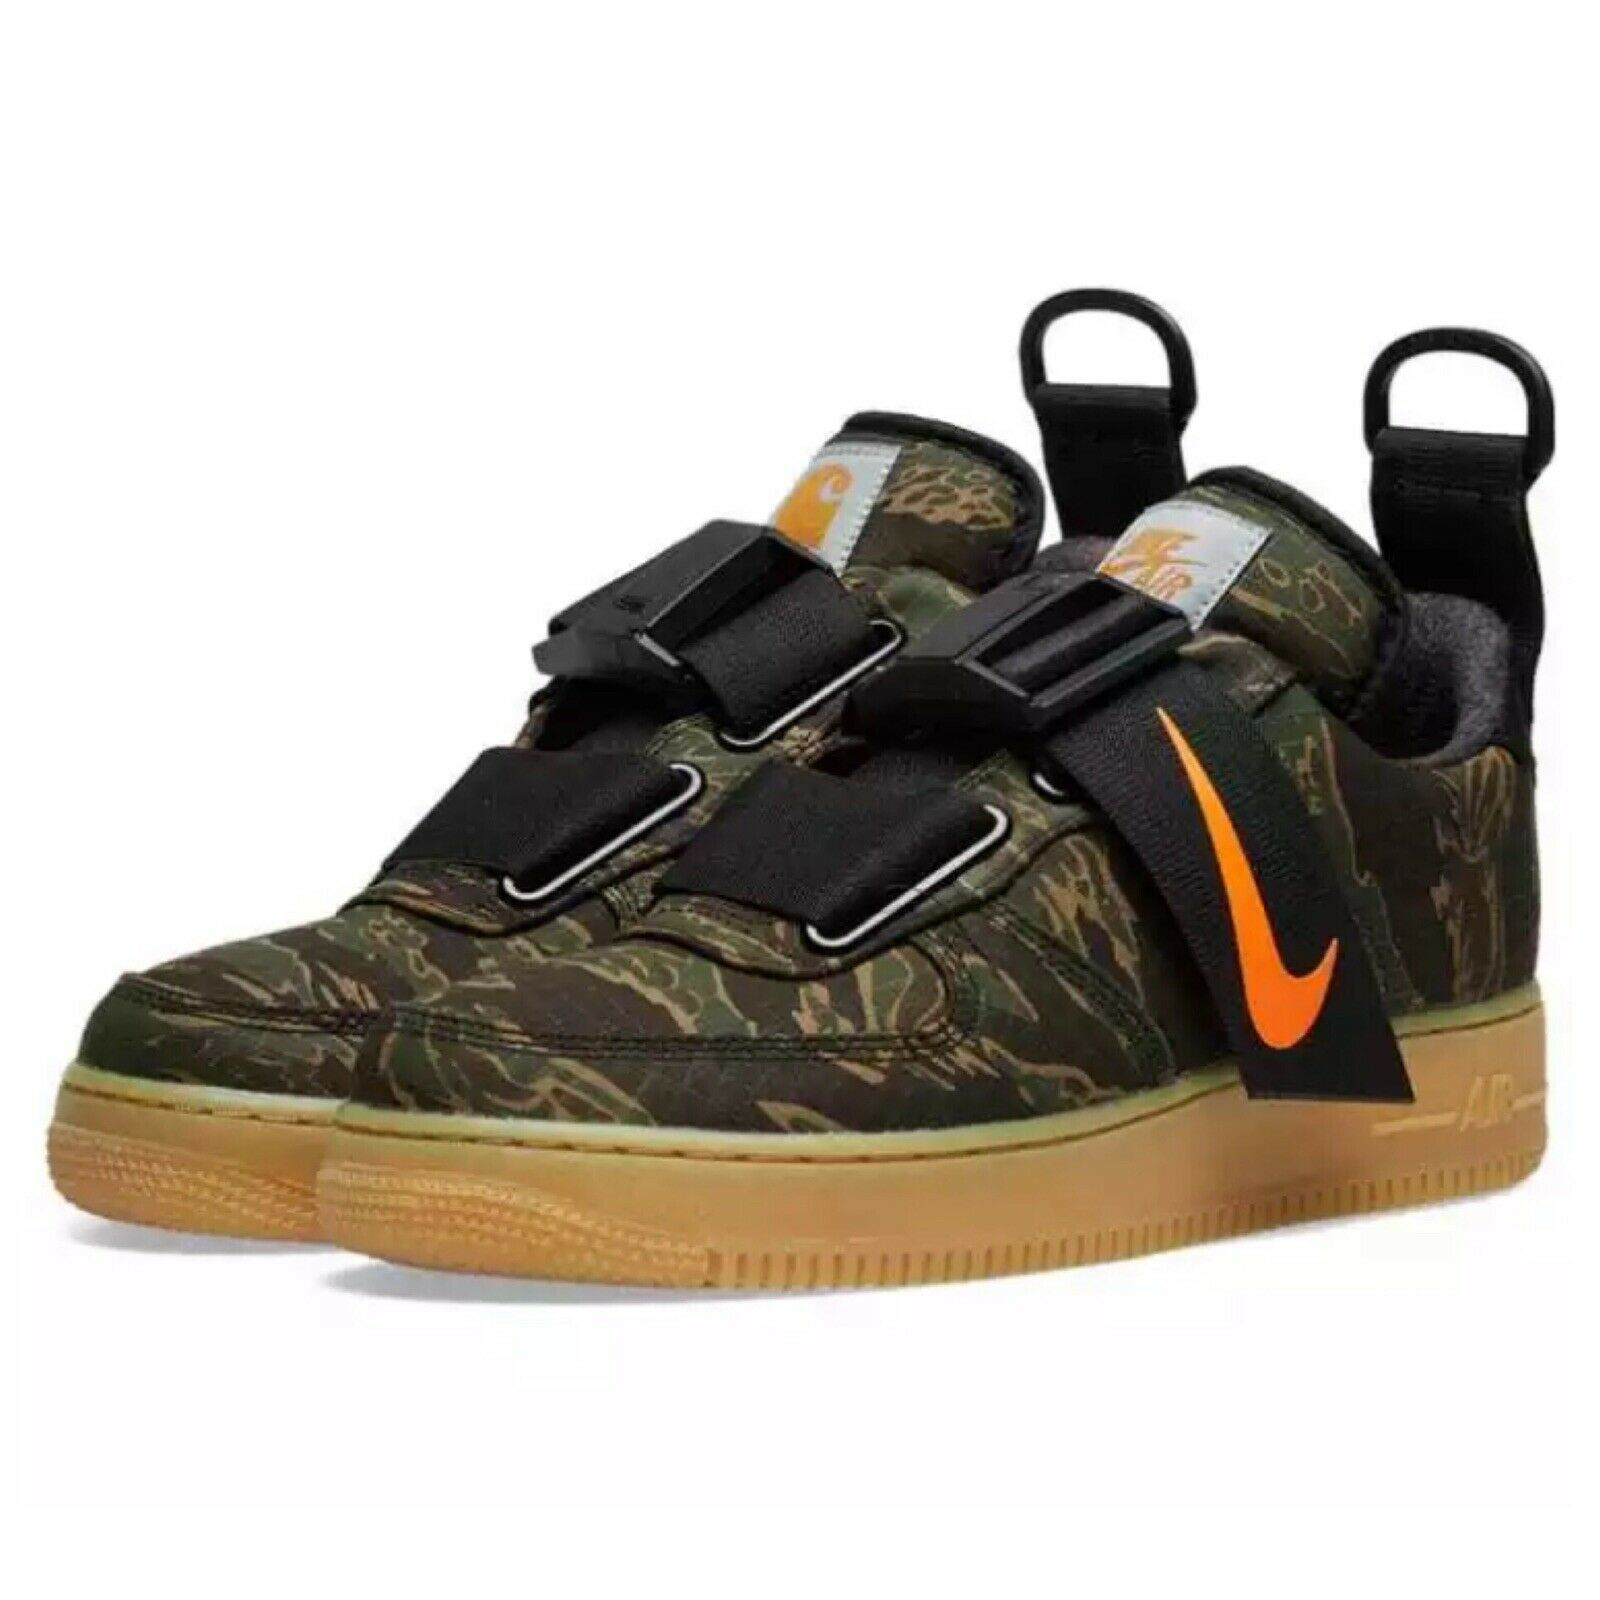 f872dea9261 Carhartt x Nike Air Force 1 Low Utility WIP and similar items